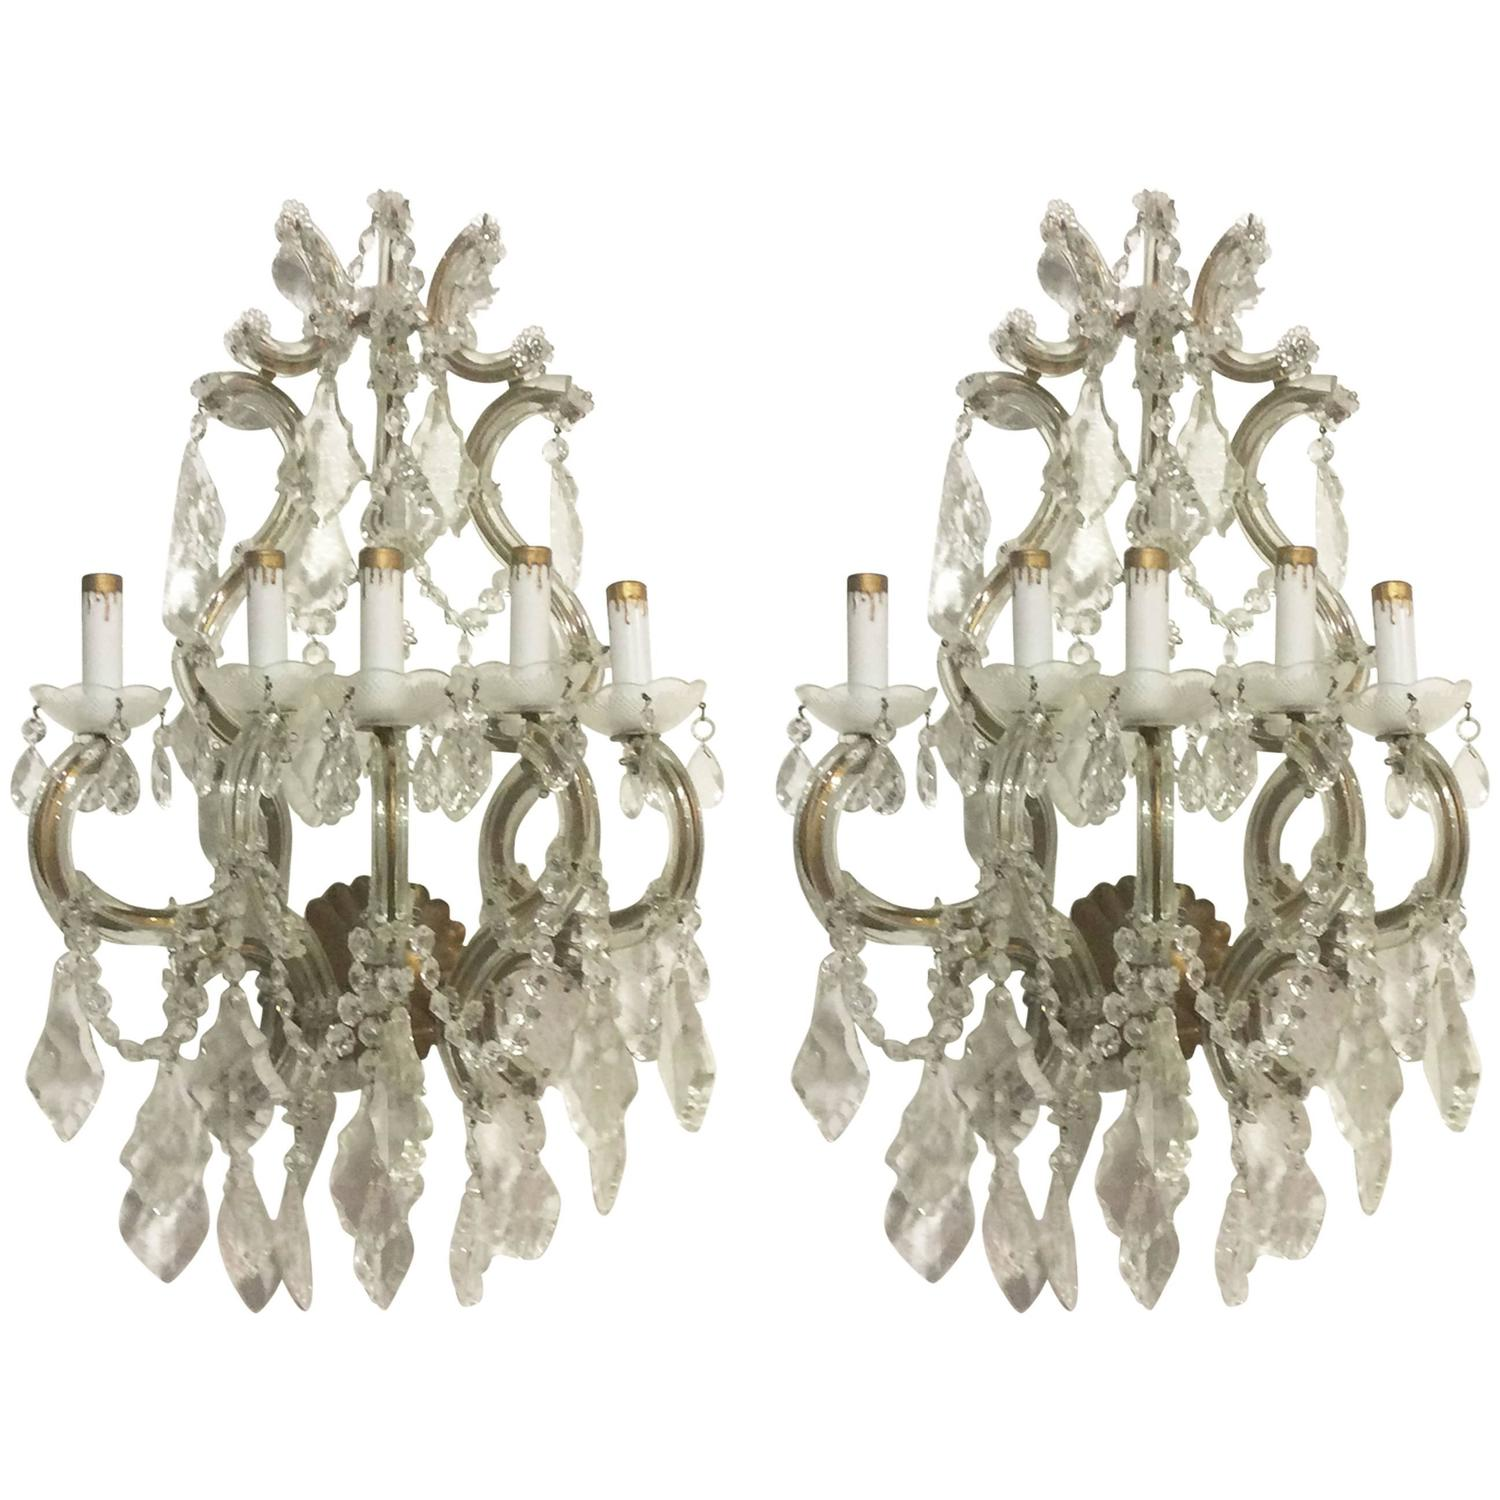 Crystal Wall Sconces Pair of Venetian Glass Italian Gold Gilt Five-Light Antique For Sale at 1stdibs